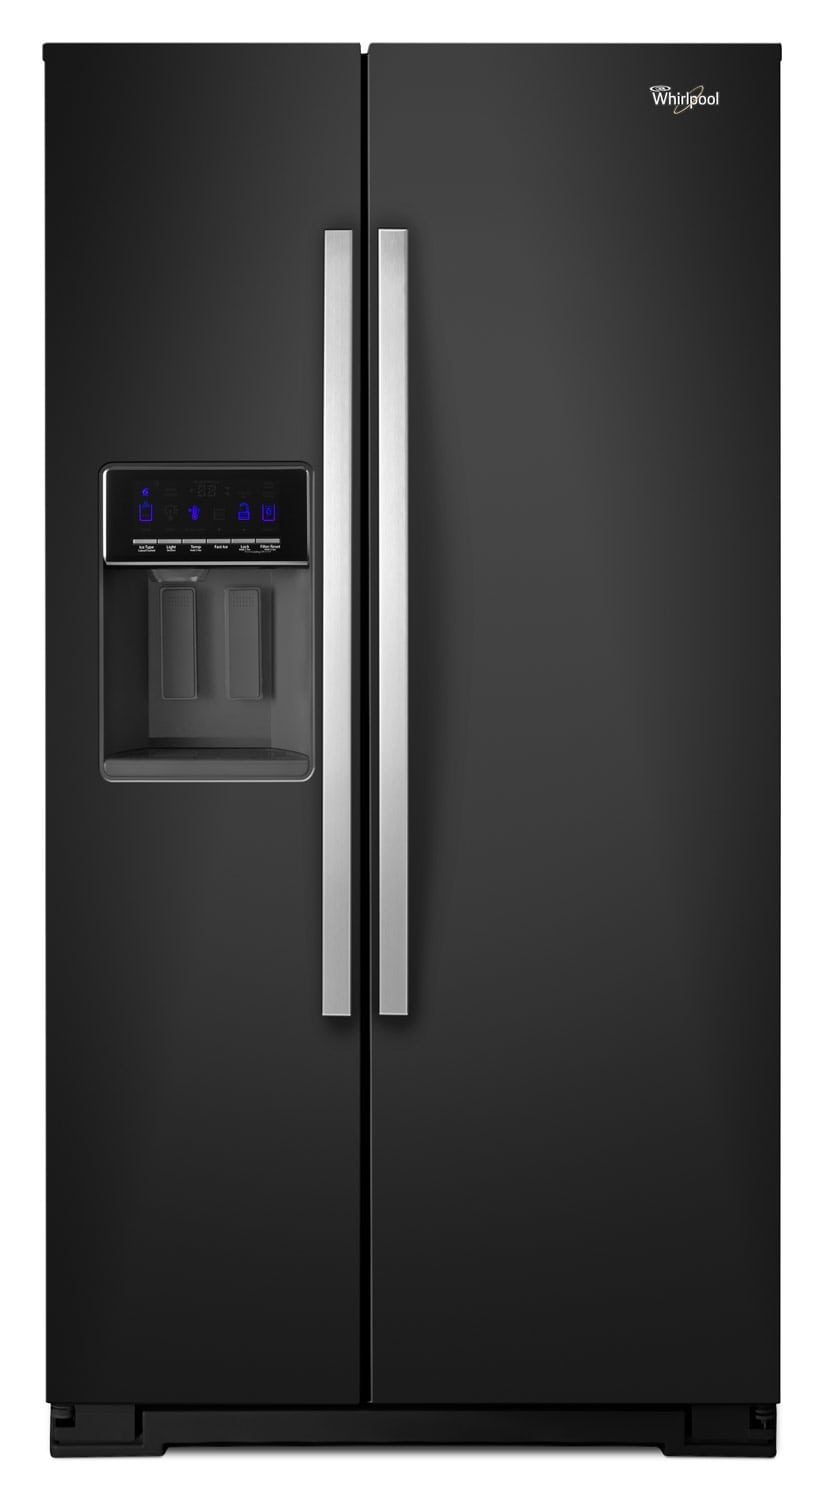 Refrigerators and Freezers - Whirlpool Black Side-by-Side Refrigerator (25.6 Cu. Ft.) - WRS586FIEE